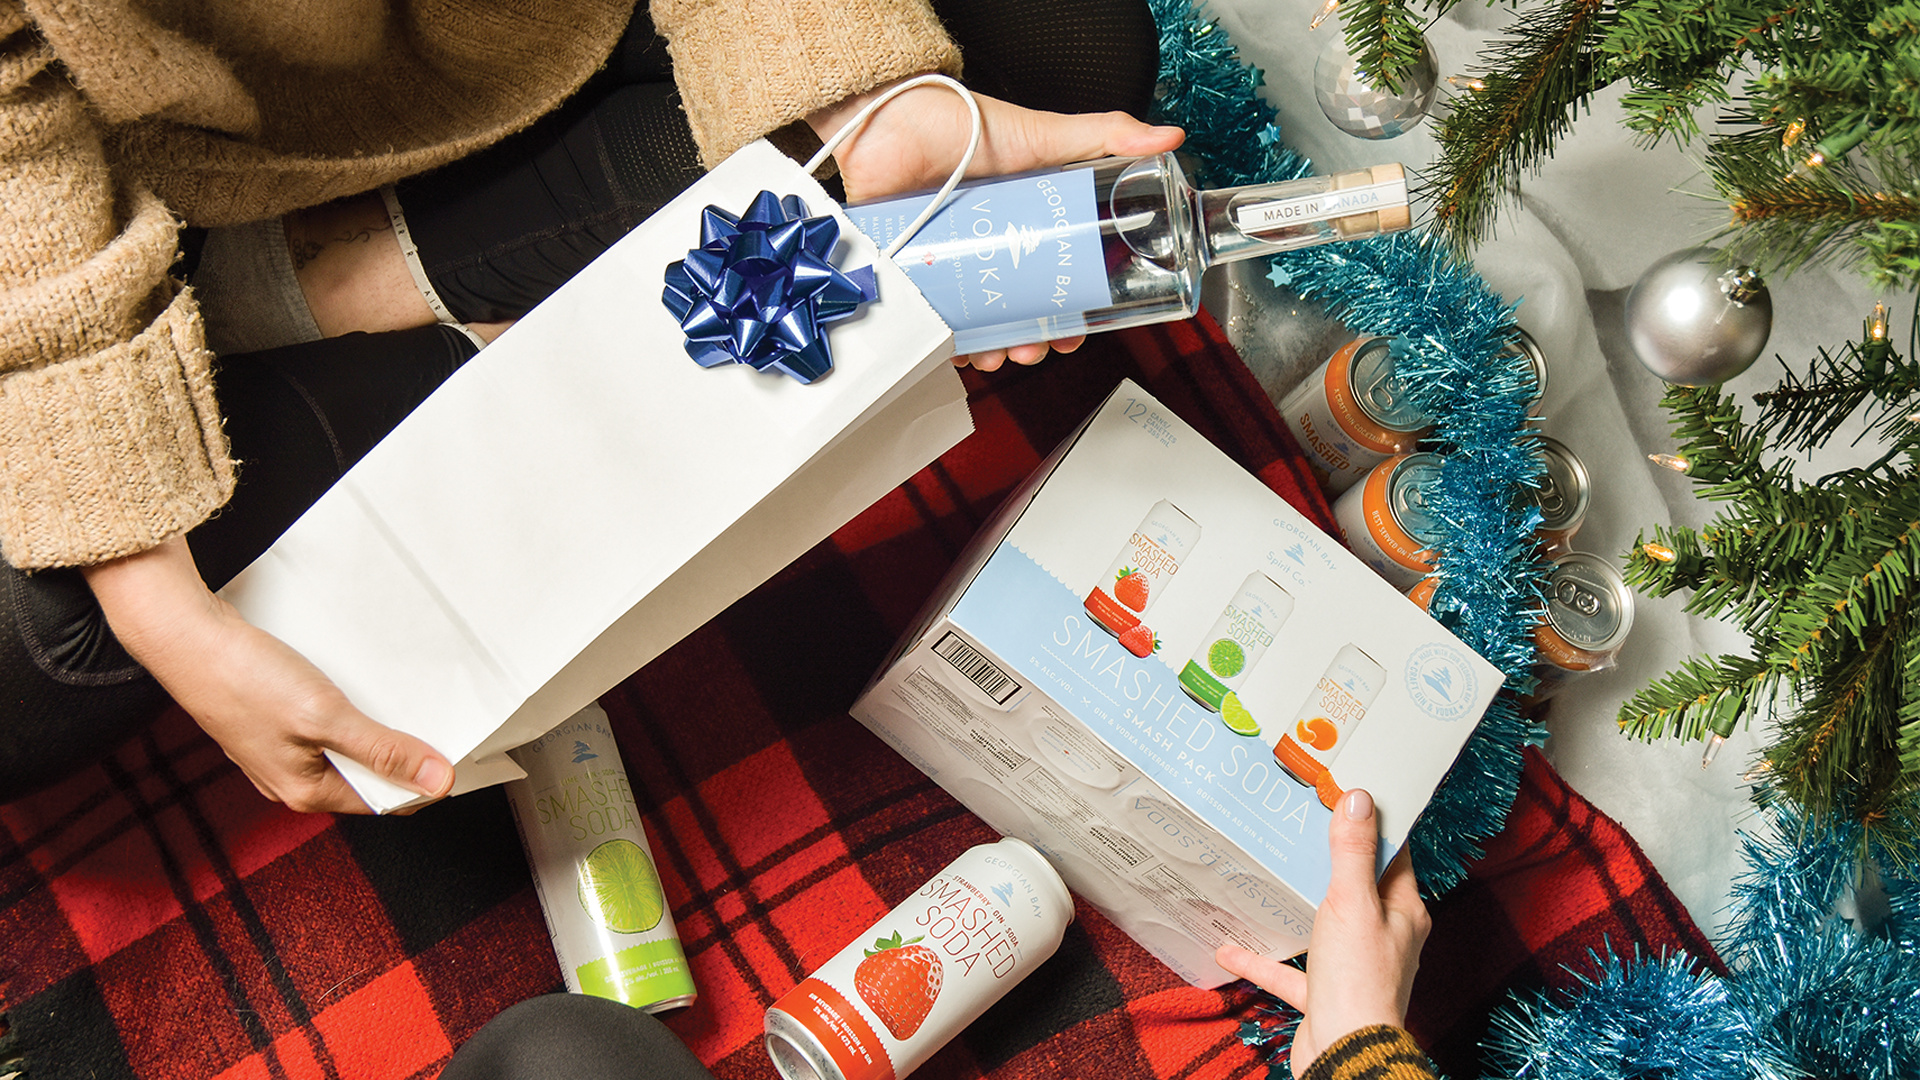 Georgian Bay Spirit Co. | Georgian Bay Vodka and a pack of Smashes under the tree